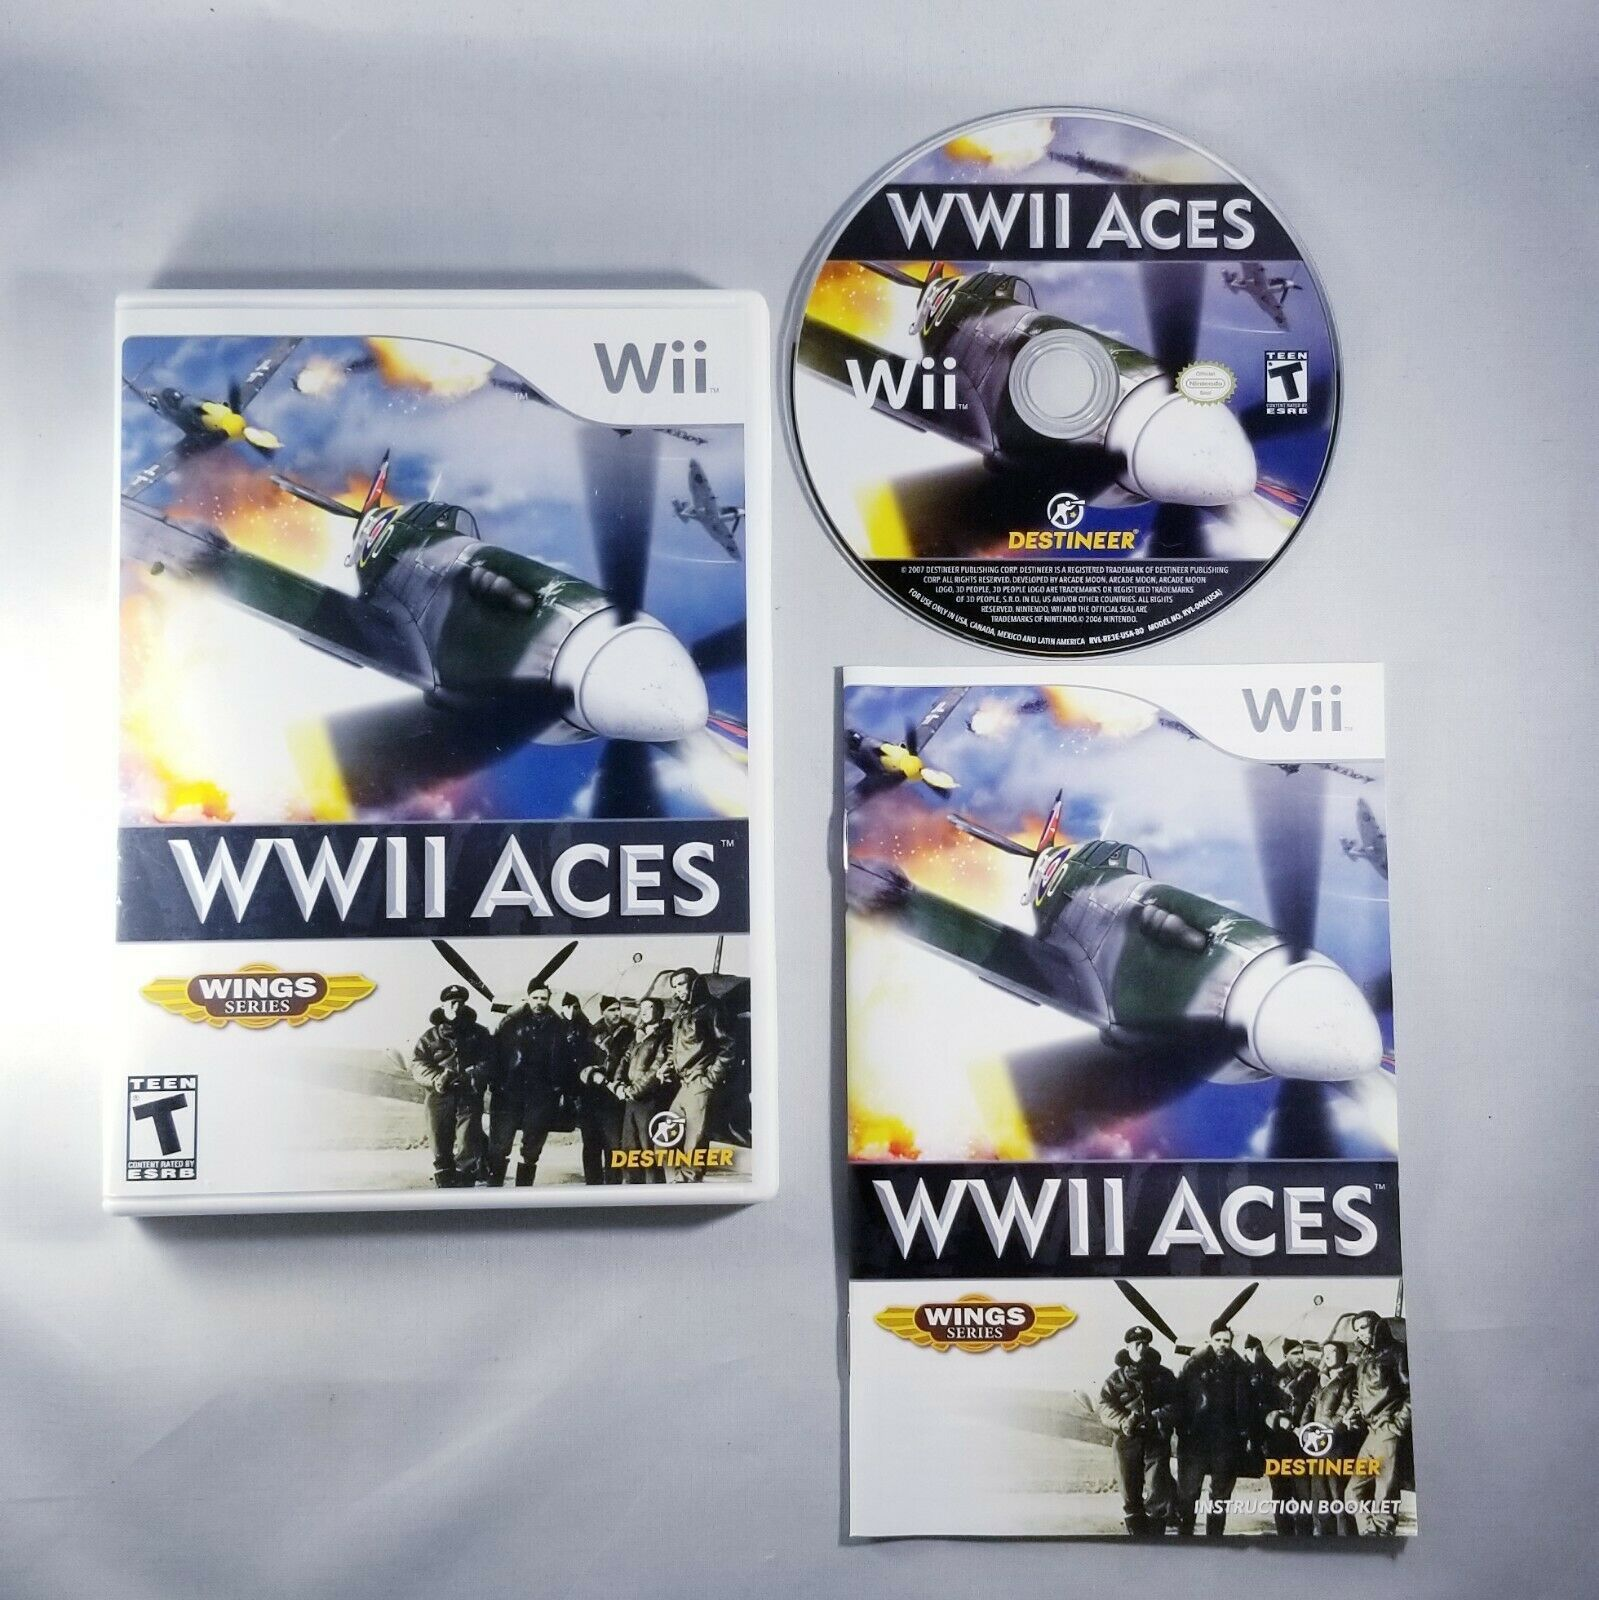 Primary image for WWII Aces (Nintendo Wii, 2008) WW2 Planes - Complete with Manual - Free Shipping